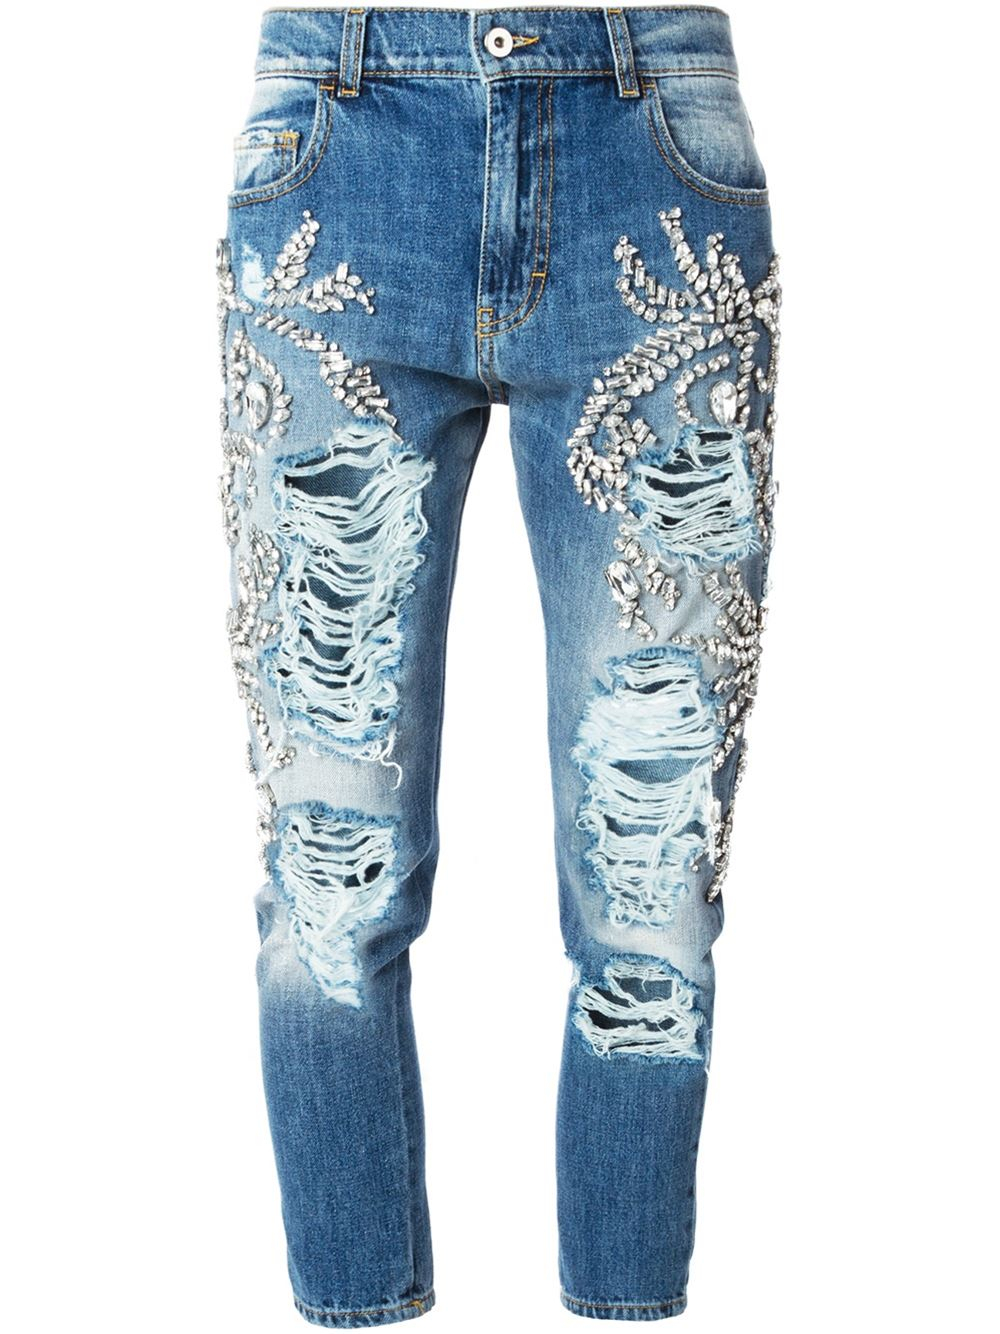 Marco bologna Loose-Fit Slim High-Waisted Denim Jeans in ...